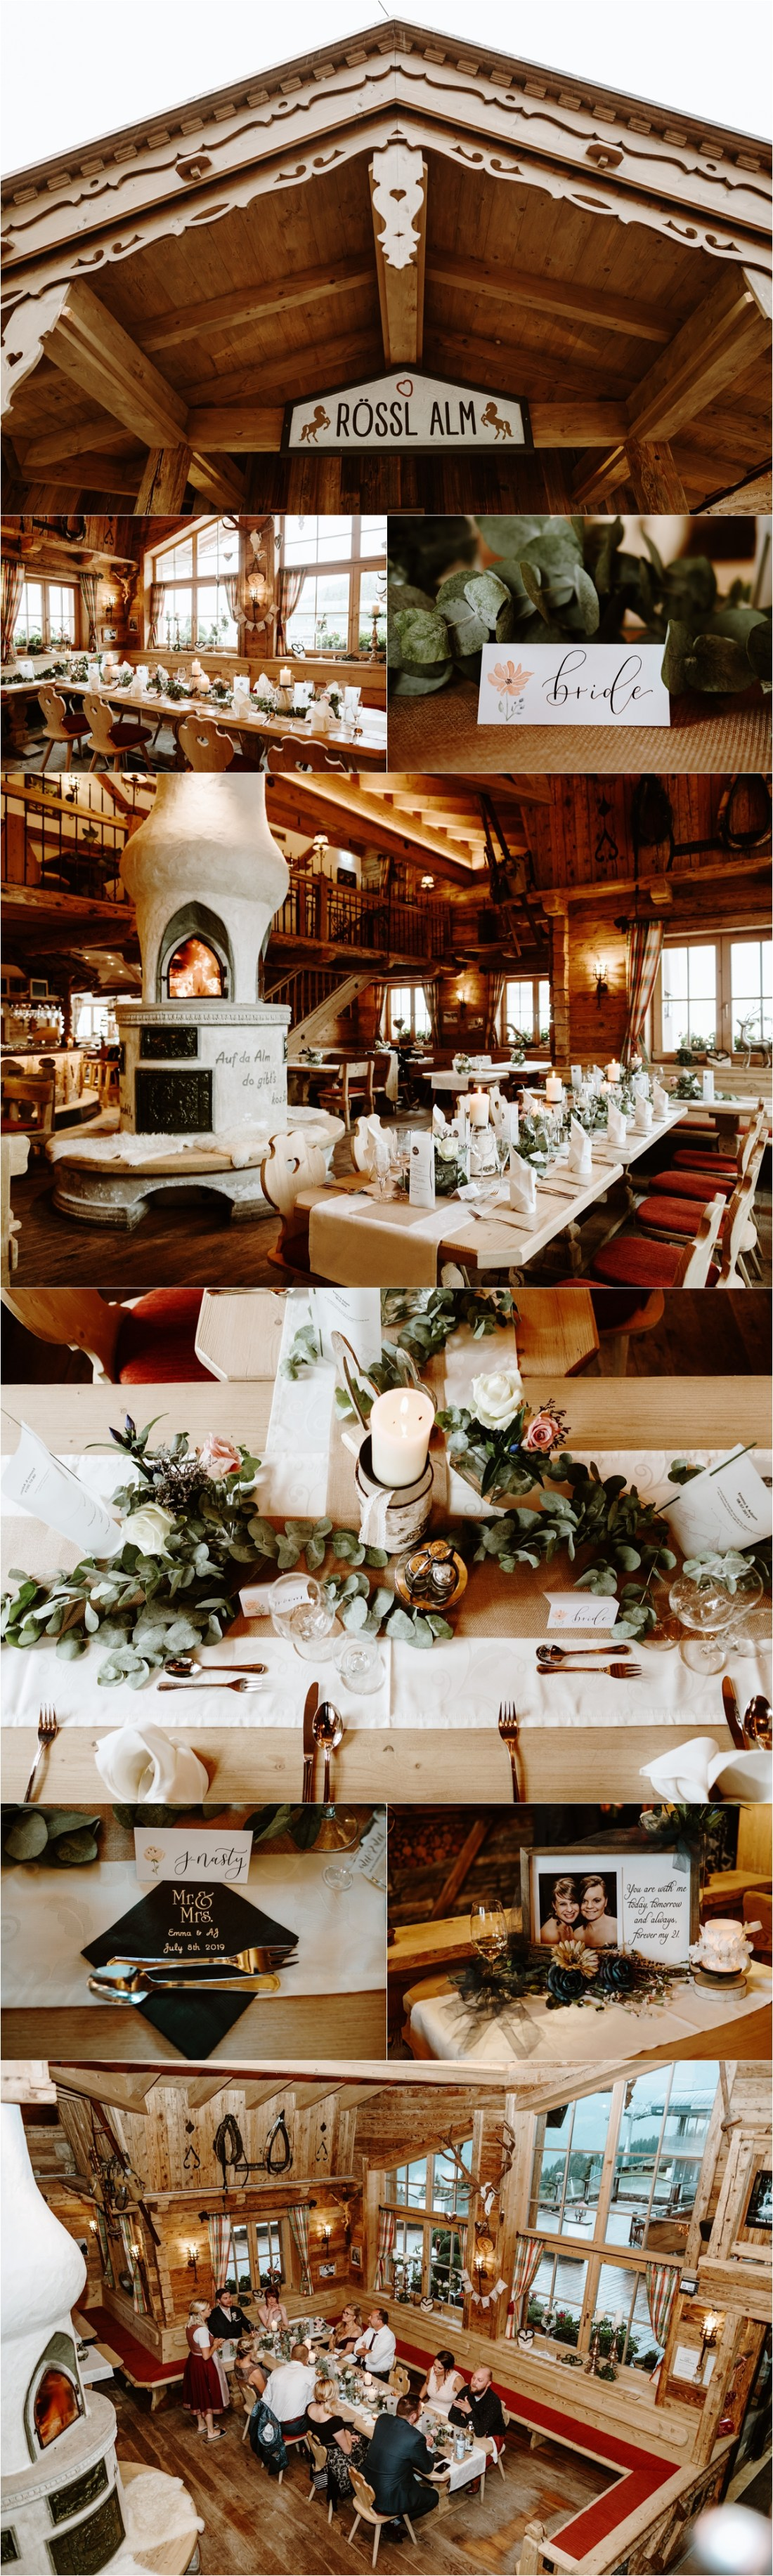 A wedding reception at the Rössl Alm in Gerlos. Photos by Wild Connections Photography